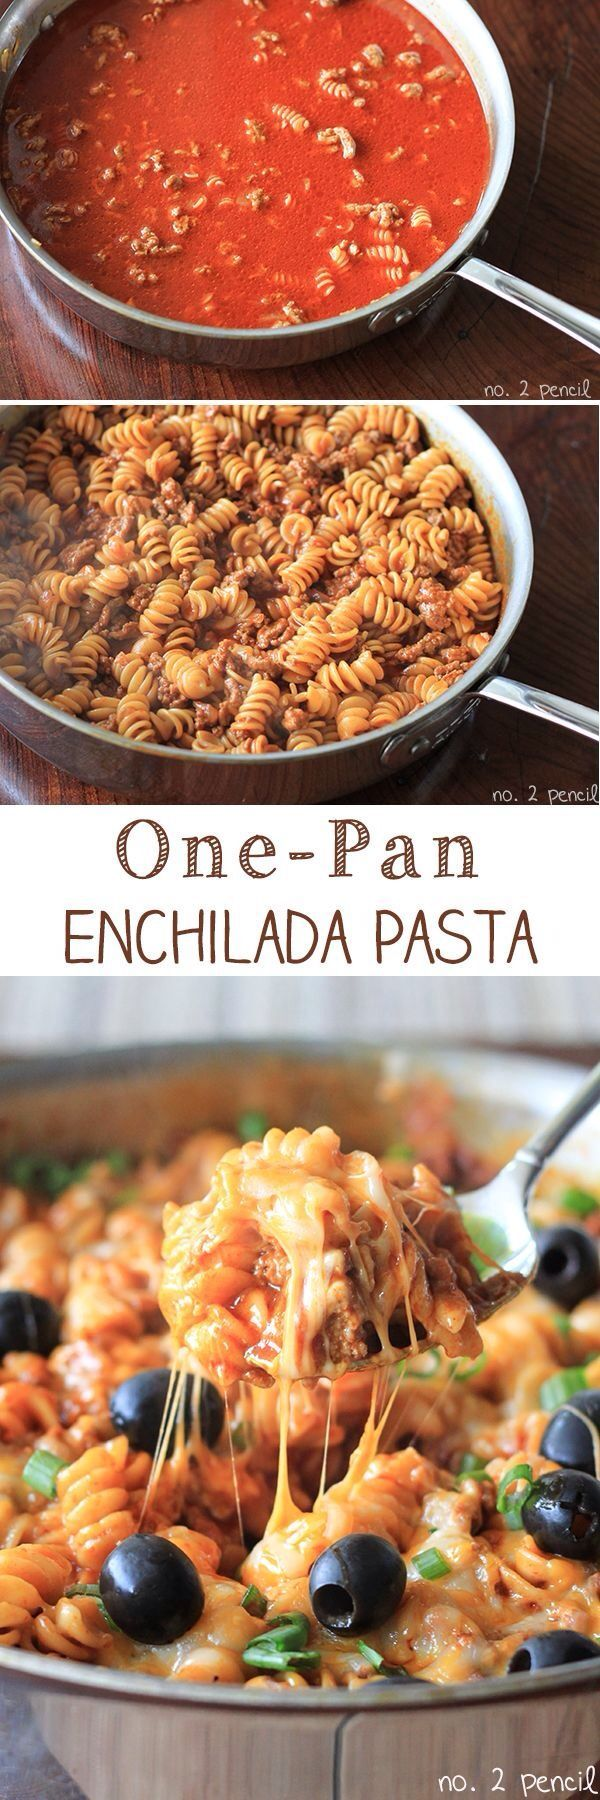 one pan enchilada pasta